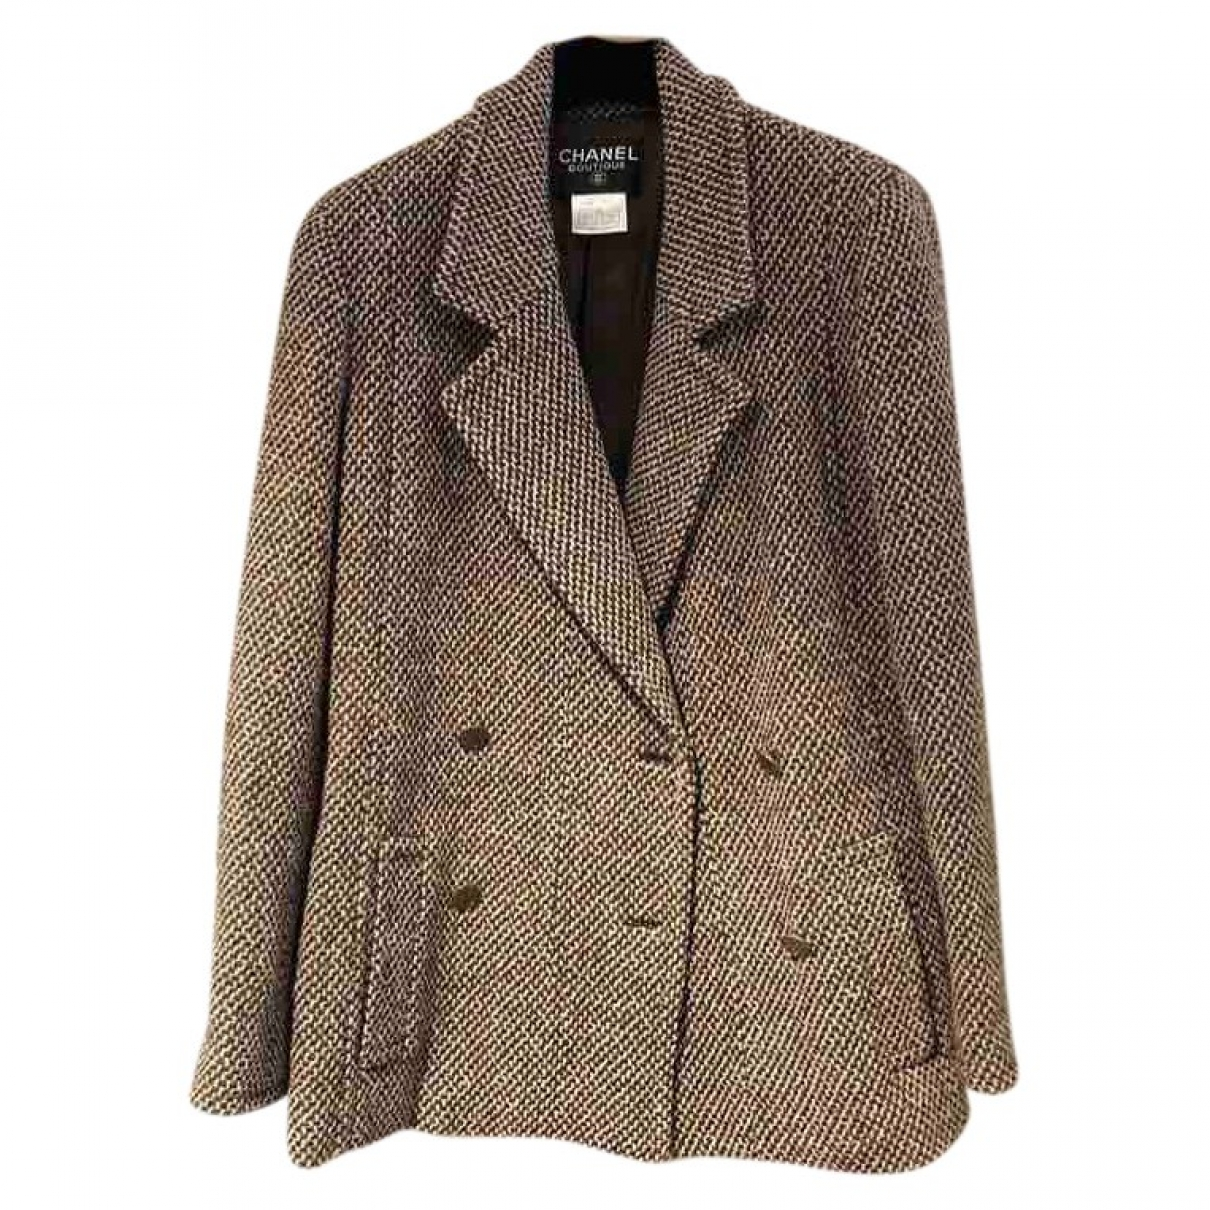 Chanel \N Brown Cotton jacket for Women 38 FR